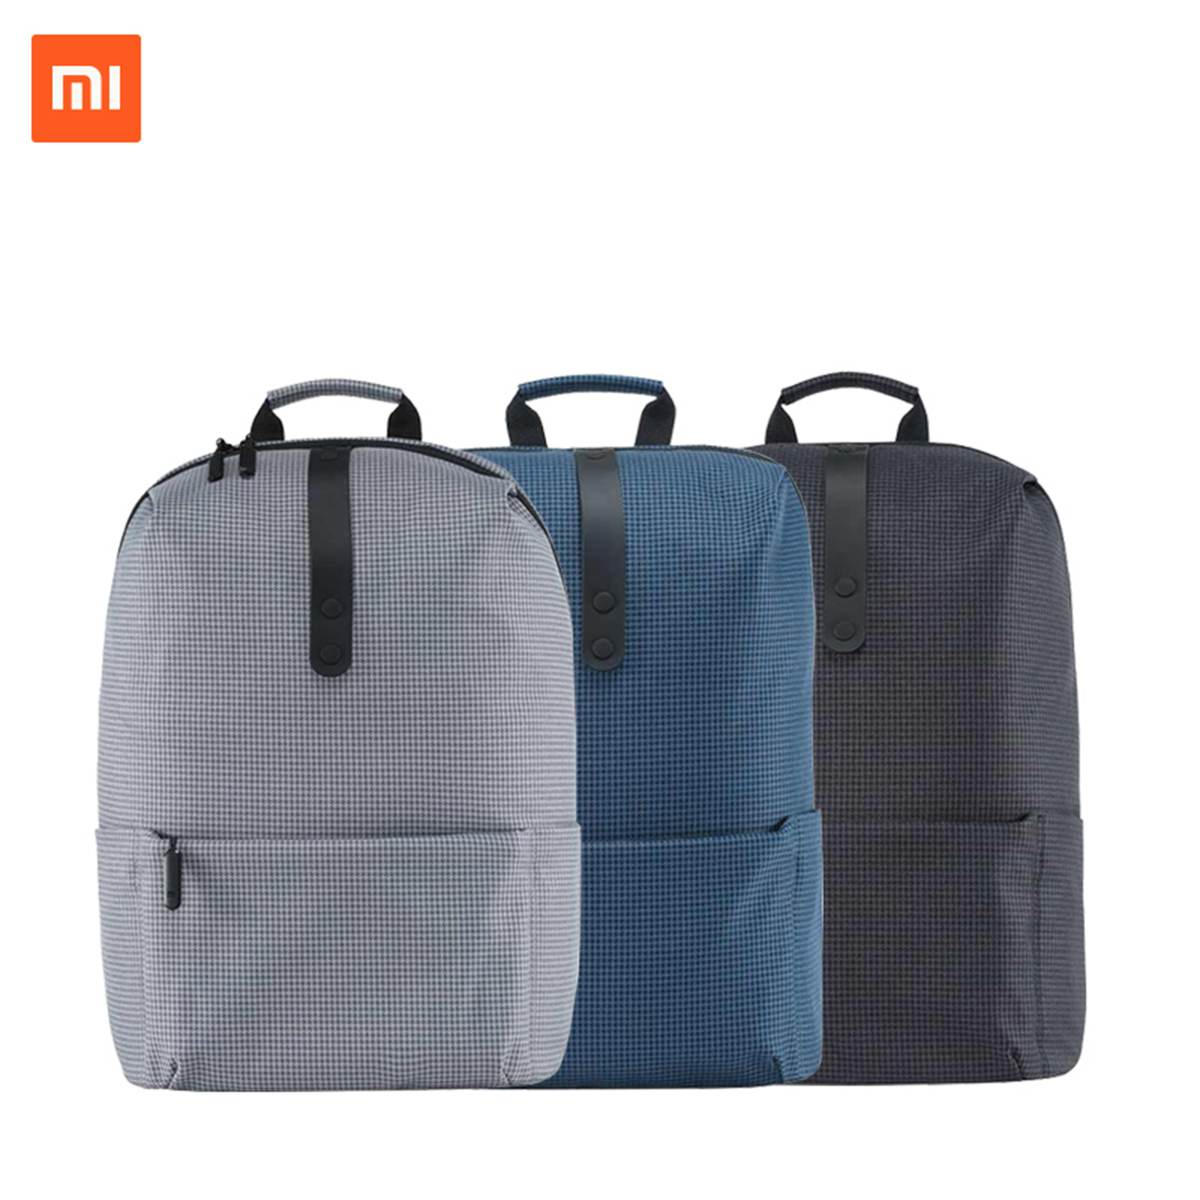 Xiaomi Fashion Backpack 15.6 Inch 20L College Style School Bag Laptop Computer Backpack For Women Men Boy Girl